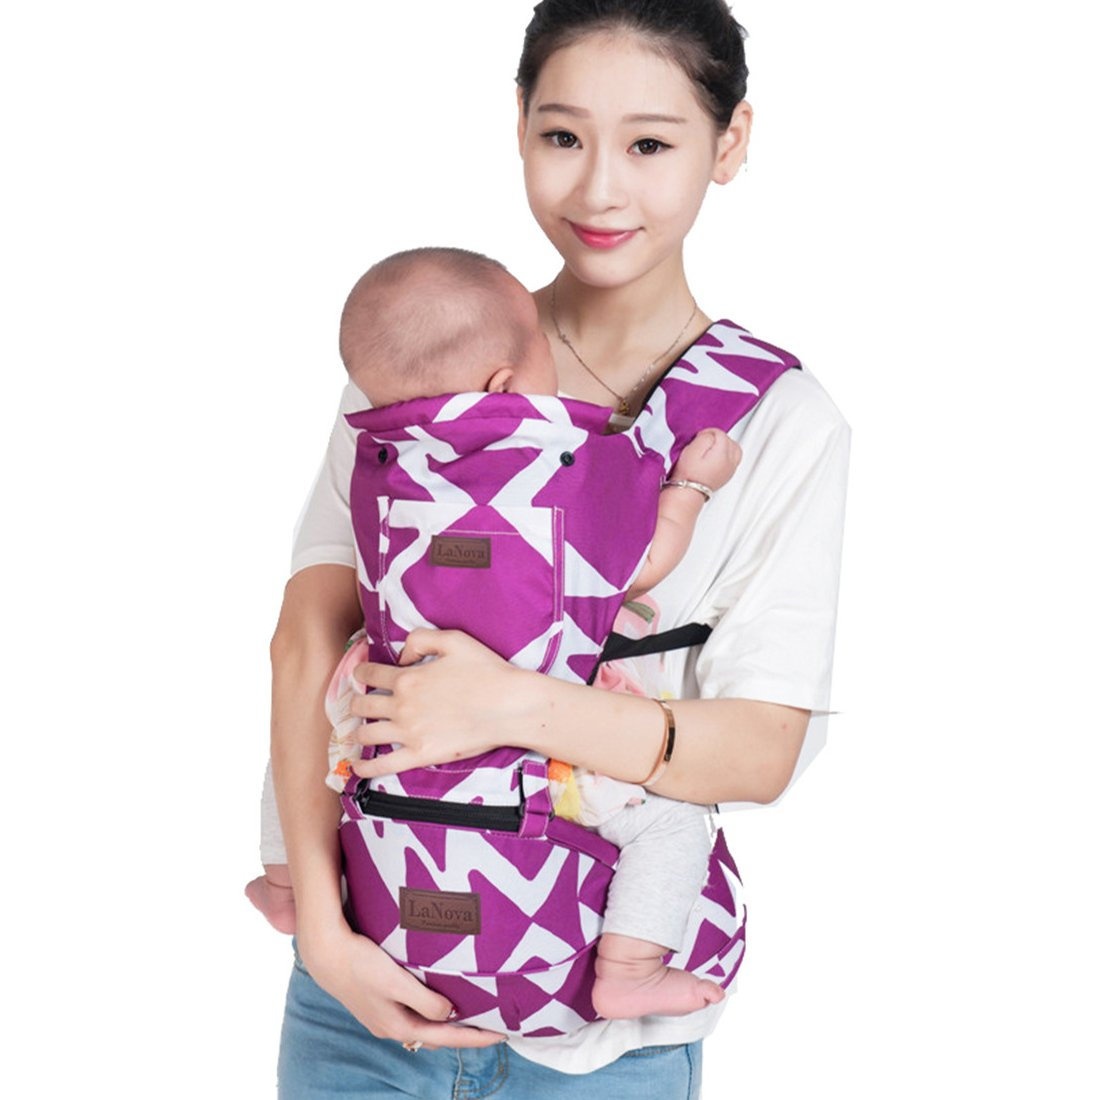 LaNova Baby Carrier with Hood Front and Back Adjustable Straps & Comfort Pads for Women and Men Cotton Fabric Perfect for Growing Kids Boys and Girls from 12-35 lbs 55''Maximum Adjustable Waist Purple